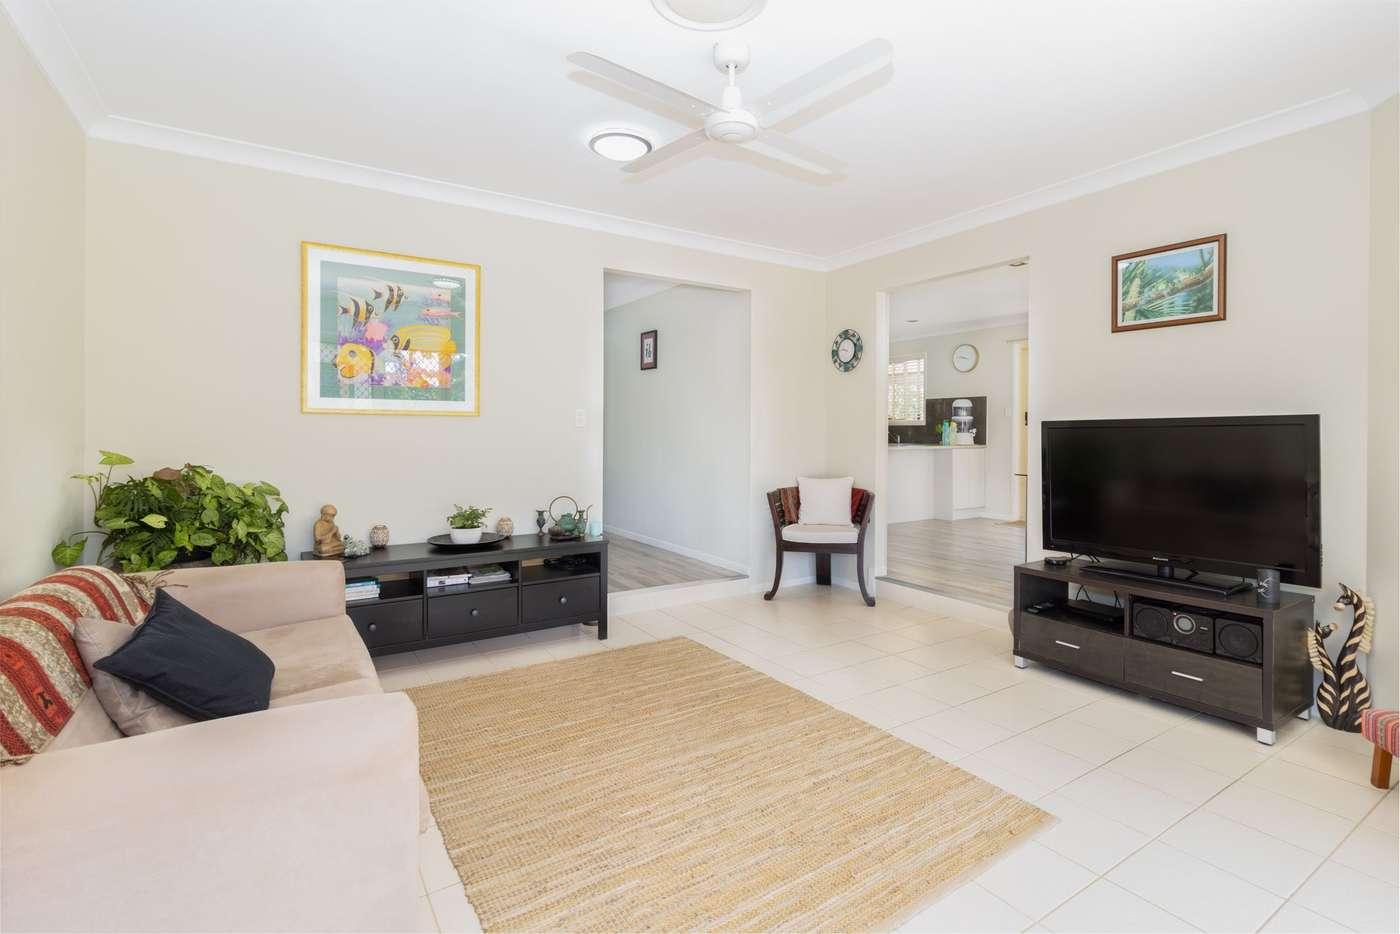 Sixth view of Homely house listing, 80 Honiton Street, Torquay QLD 4655